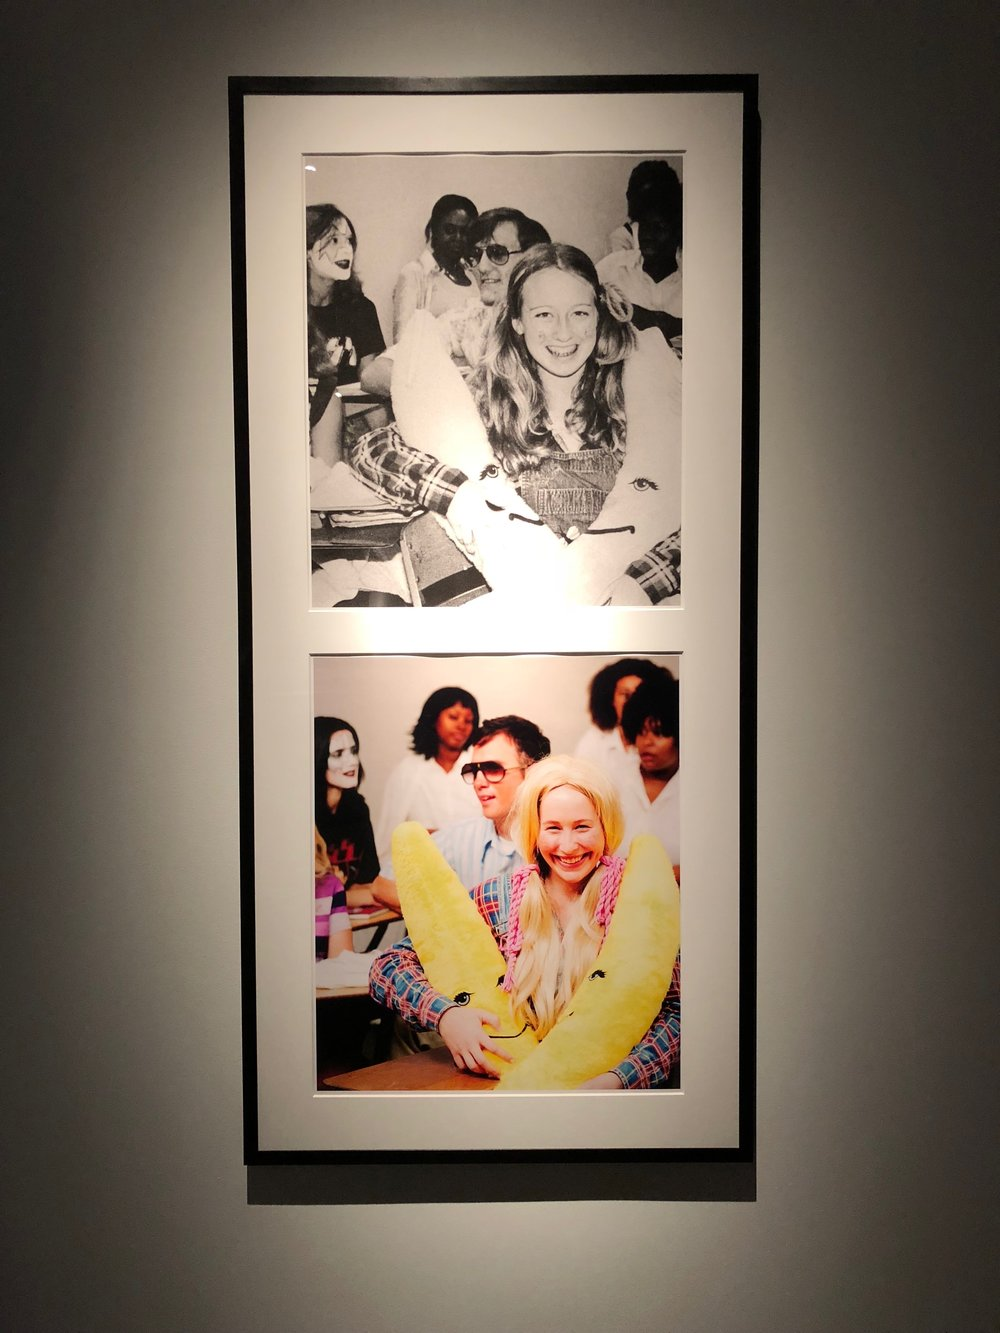 Mike Kelley, Extracurricular Activity Projective Reconstruction #8 (Singles' Mixer), 2004-2005, Mixed media with video projection and photographs, 112 x 300 x 169 inches. Photo by the author.